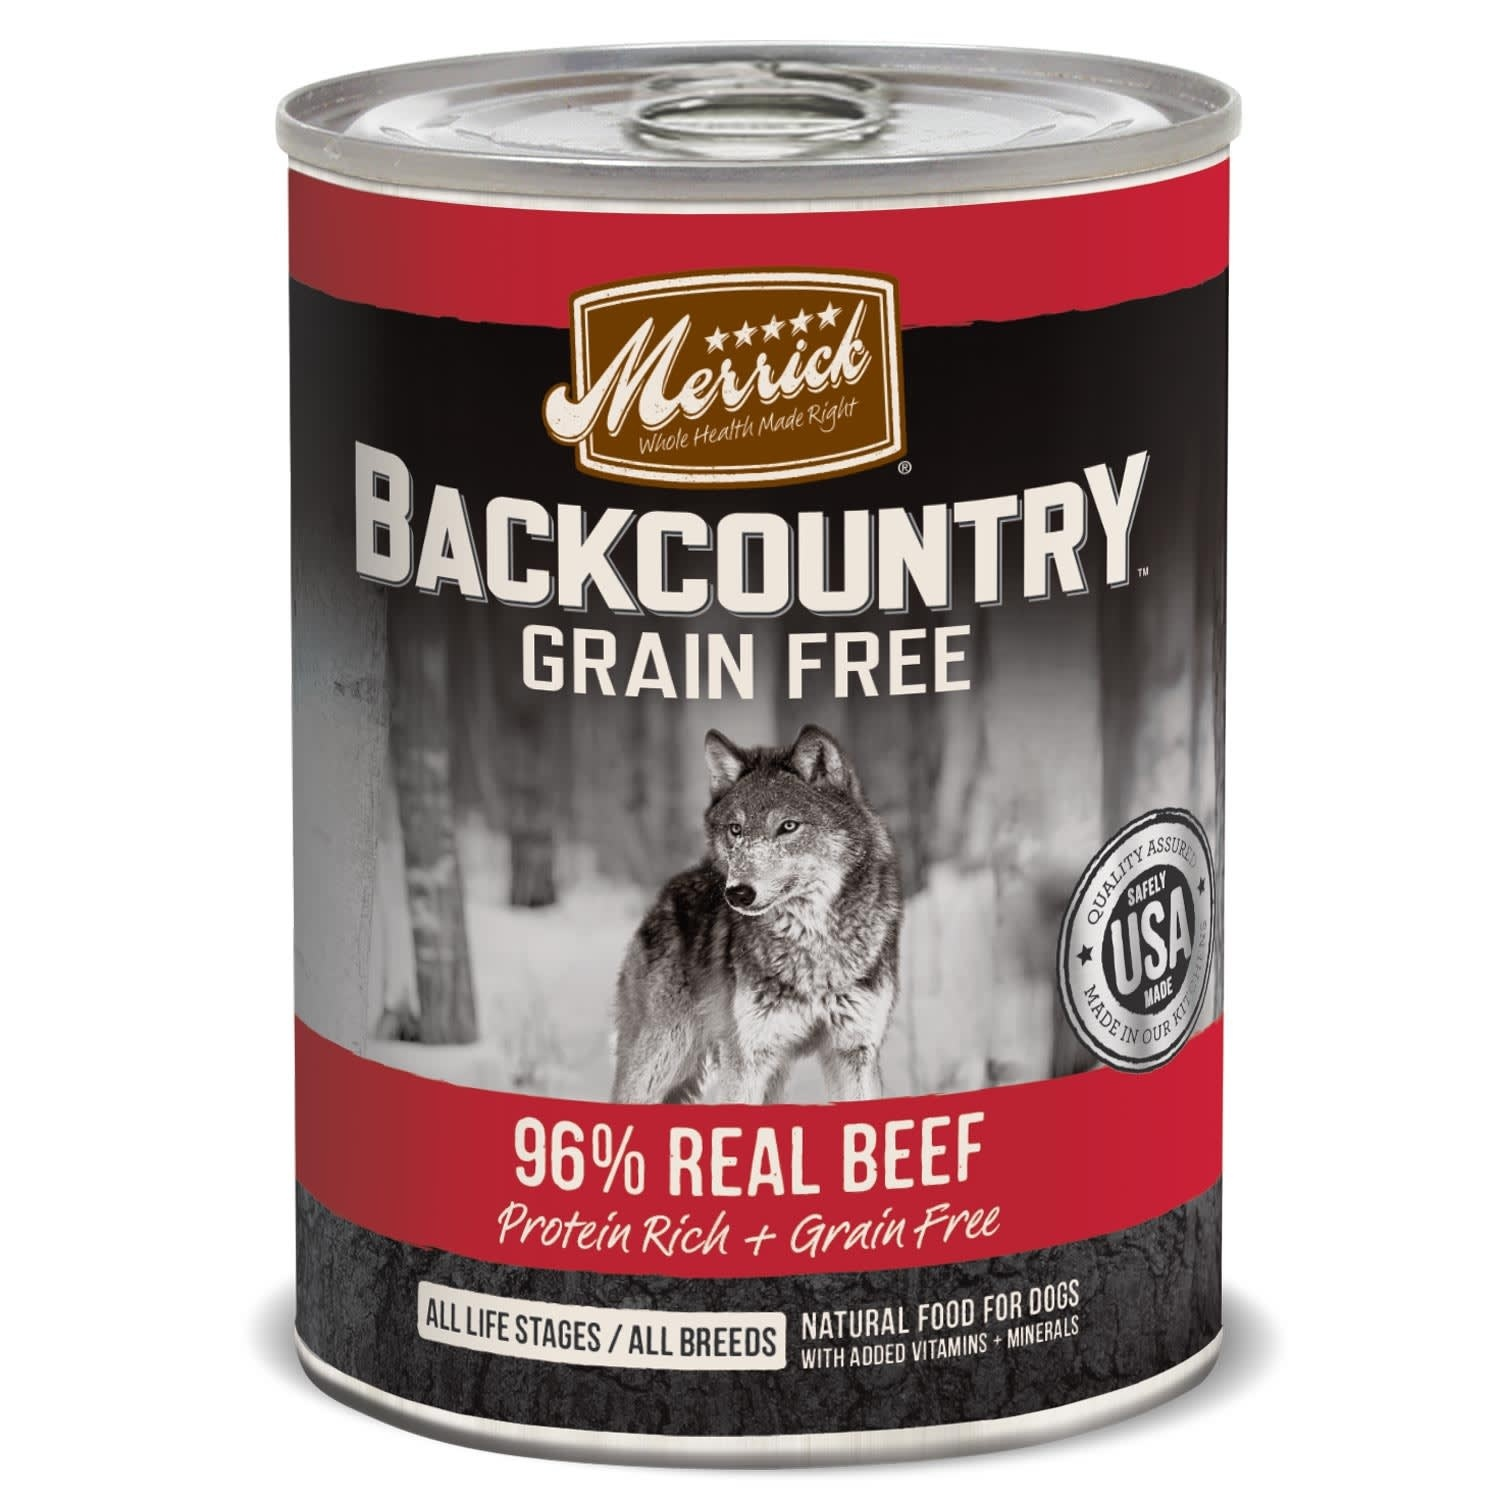 slide 1 of 1, Merrick Backcountry Grain Free 96% Real Beef Canned Dog Food,